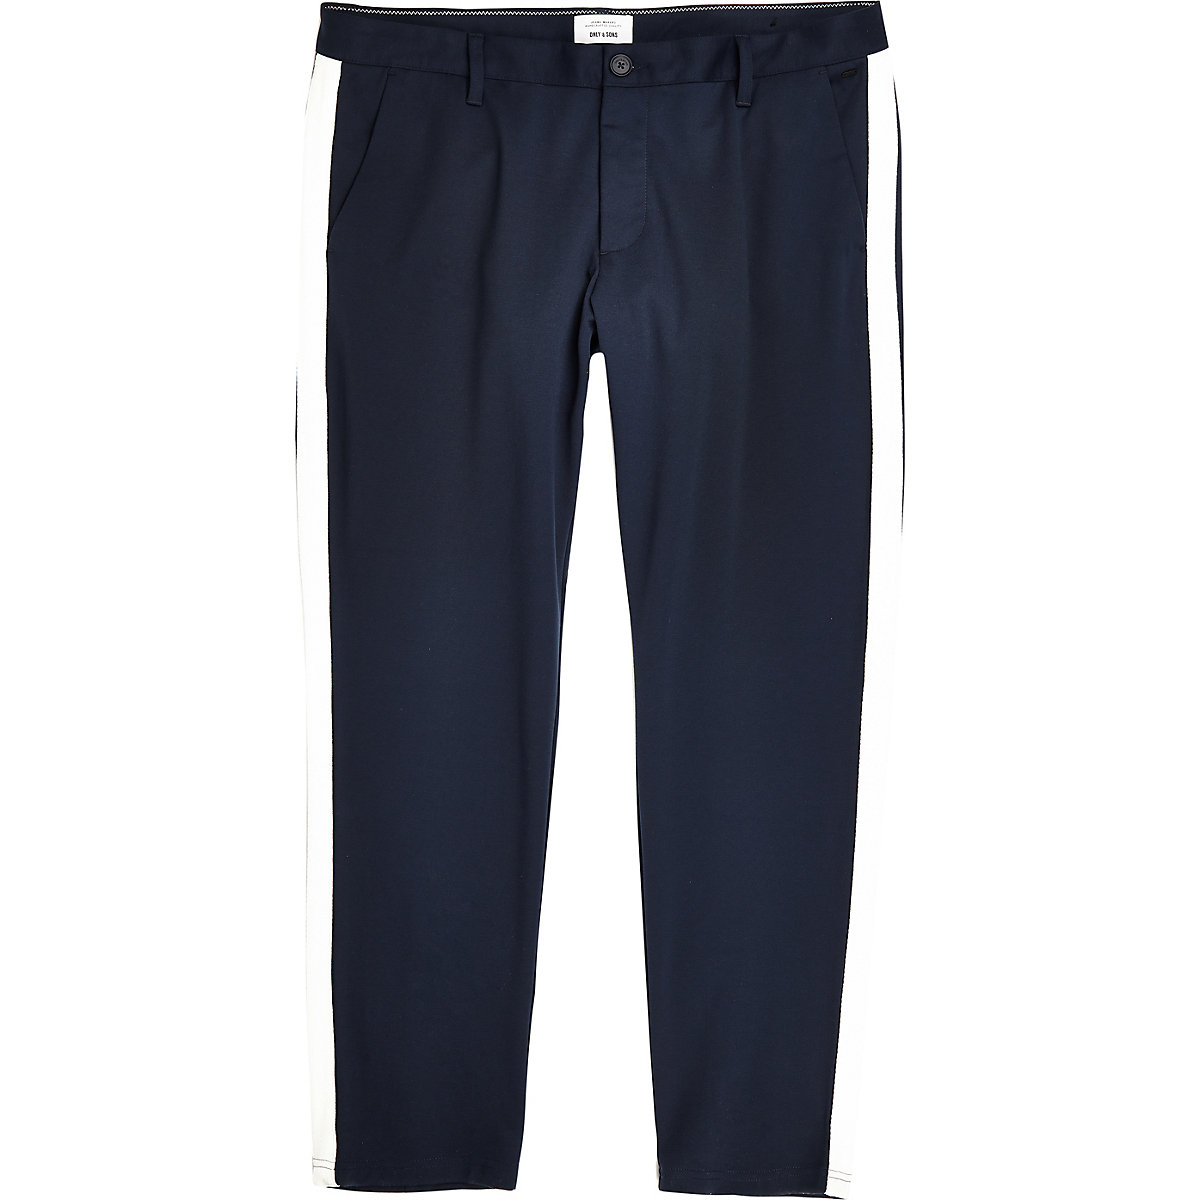 Only & Sons Big and Tall navy tape trousers